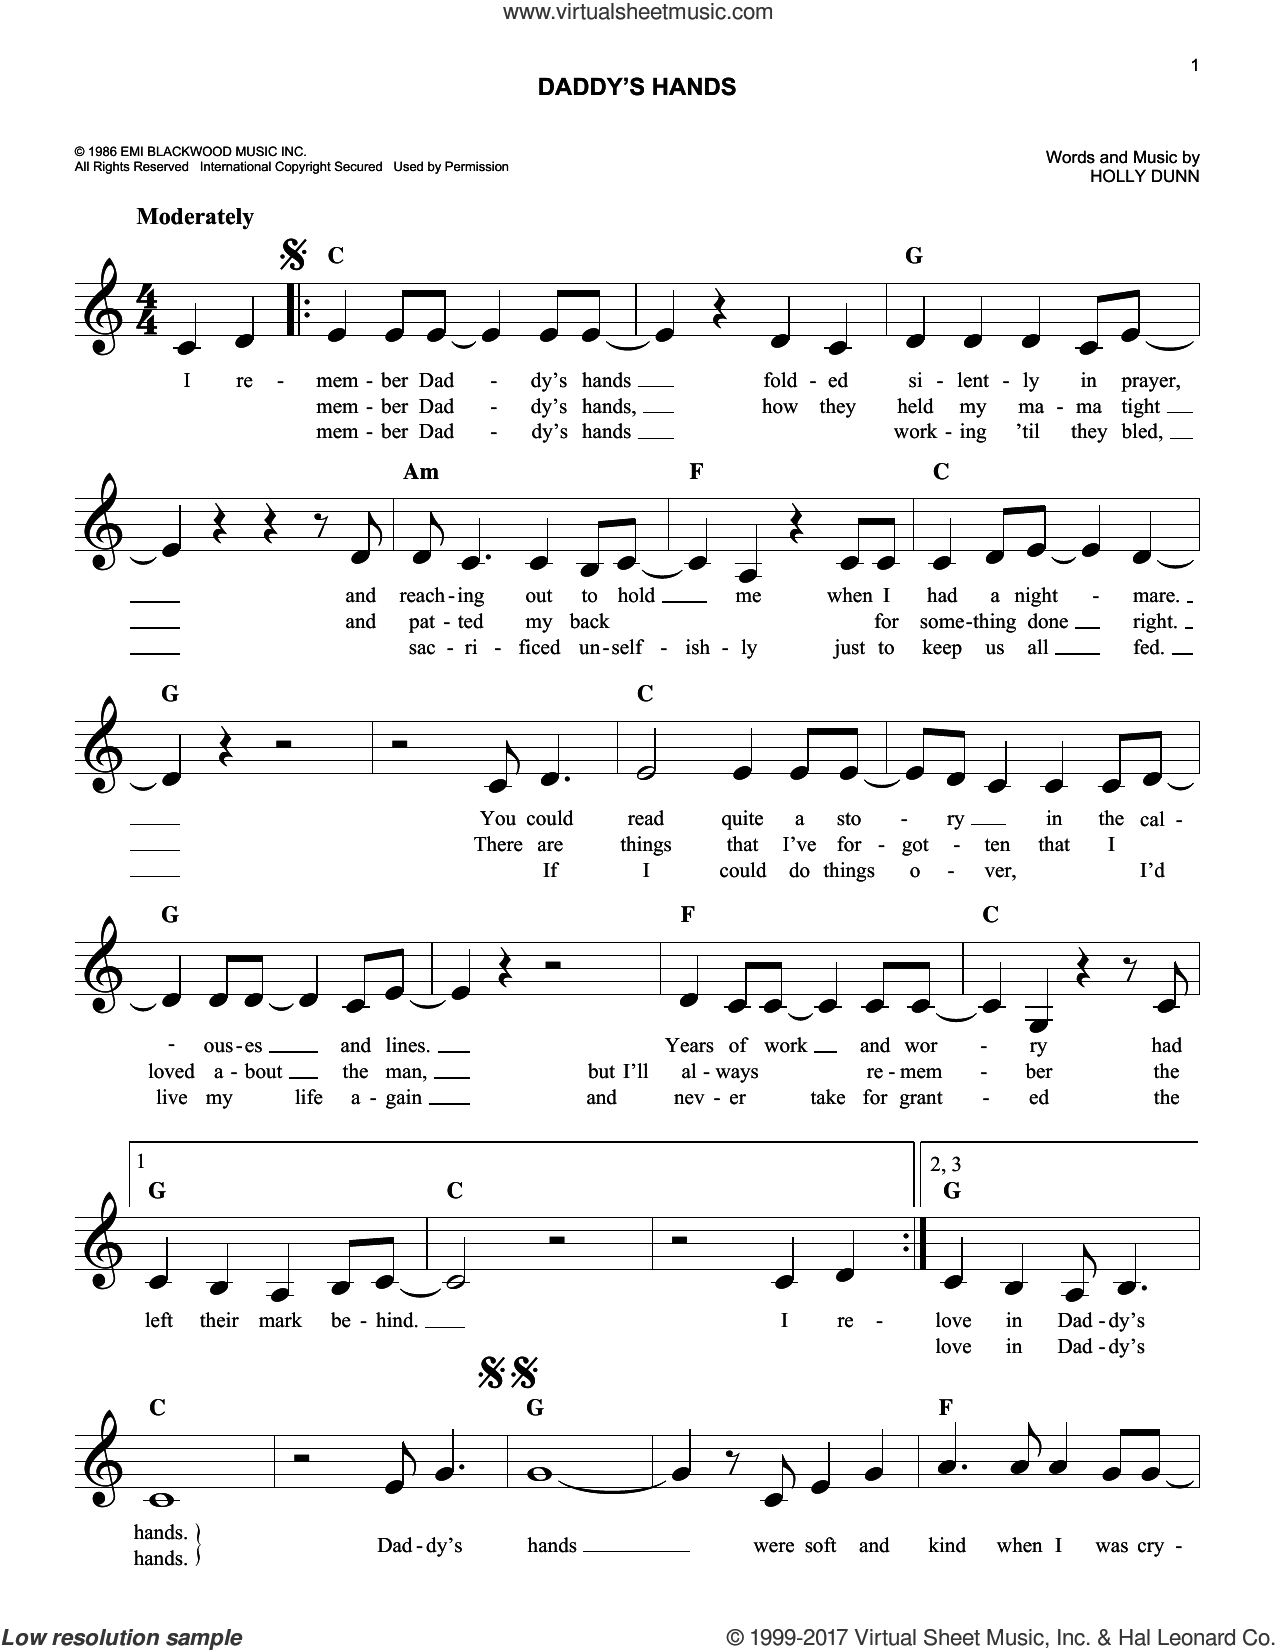 Daddy's Hands sheet music for voice and other instruments (fake book) by Holly Dunn, intermediate skill level